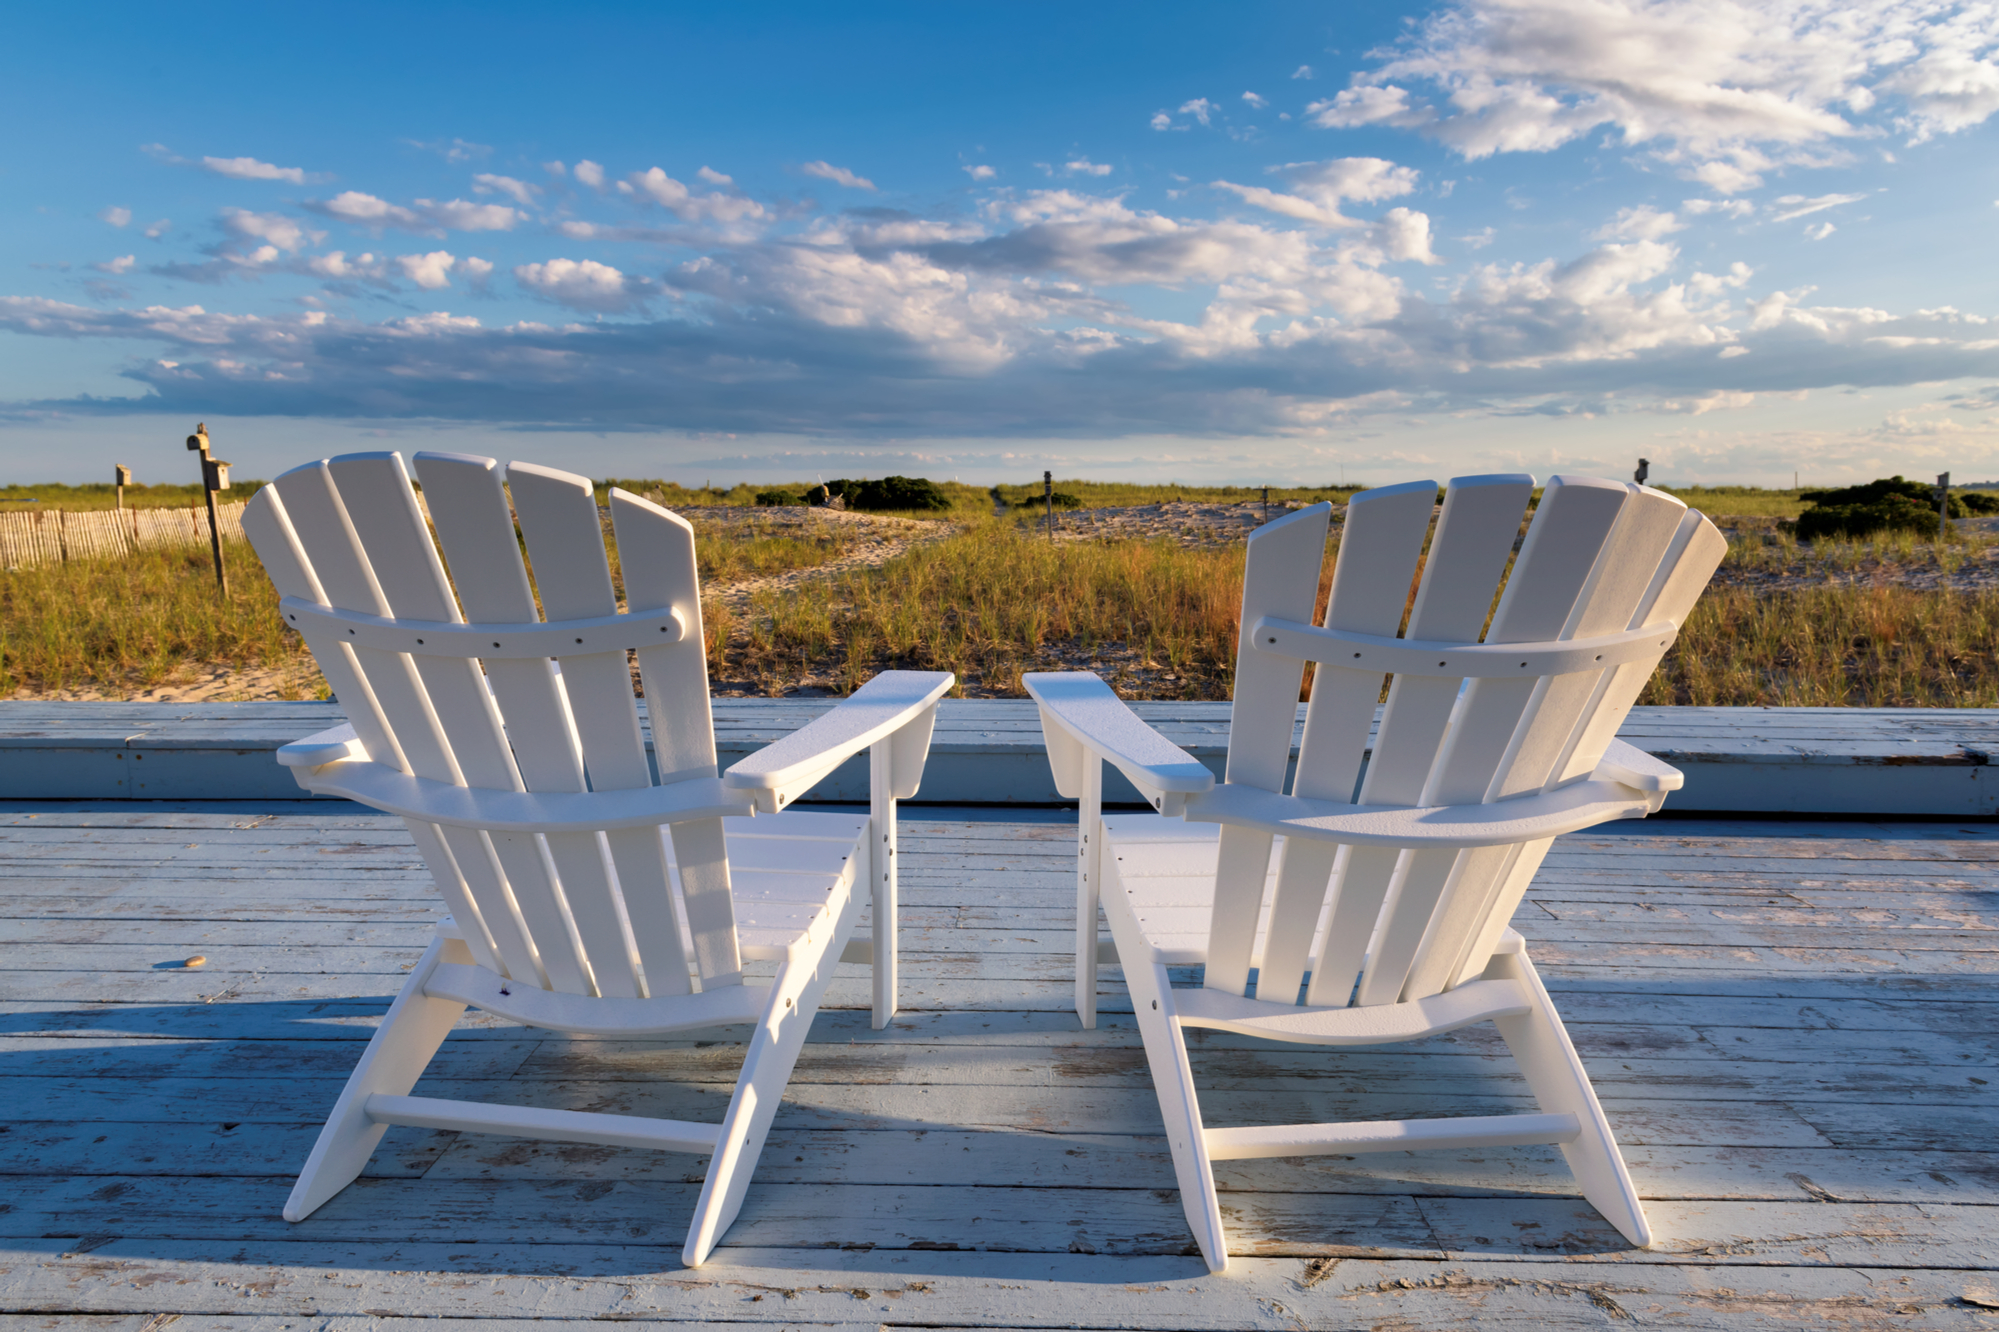 cape cod   Massachusetts   Cape Cod Massachusetts   beaches   Nantucket   lighthouses   swimming   destinations   vacations